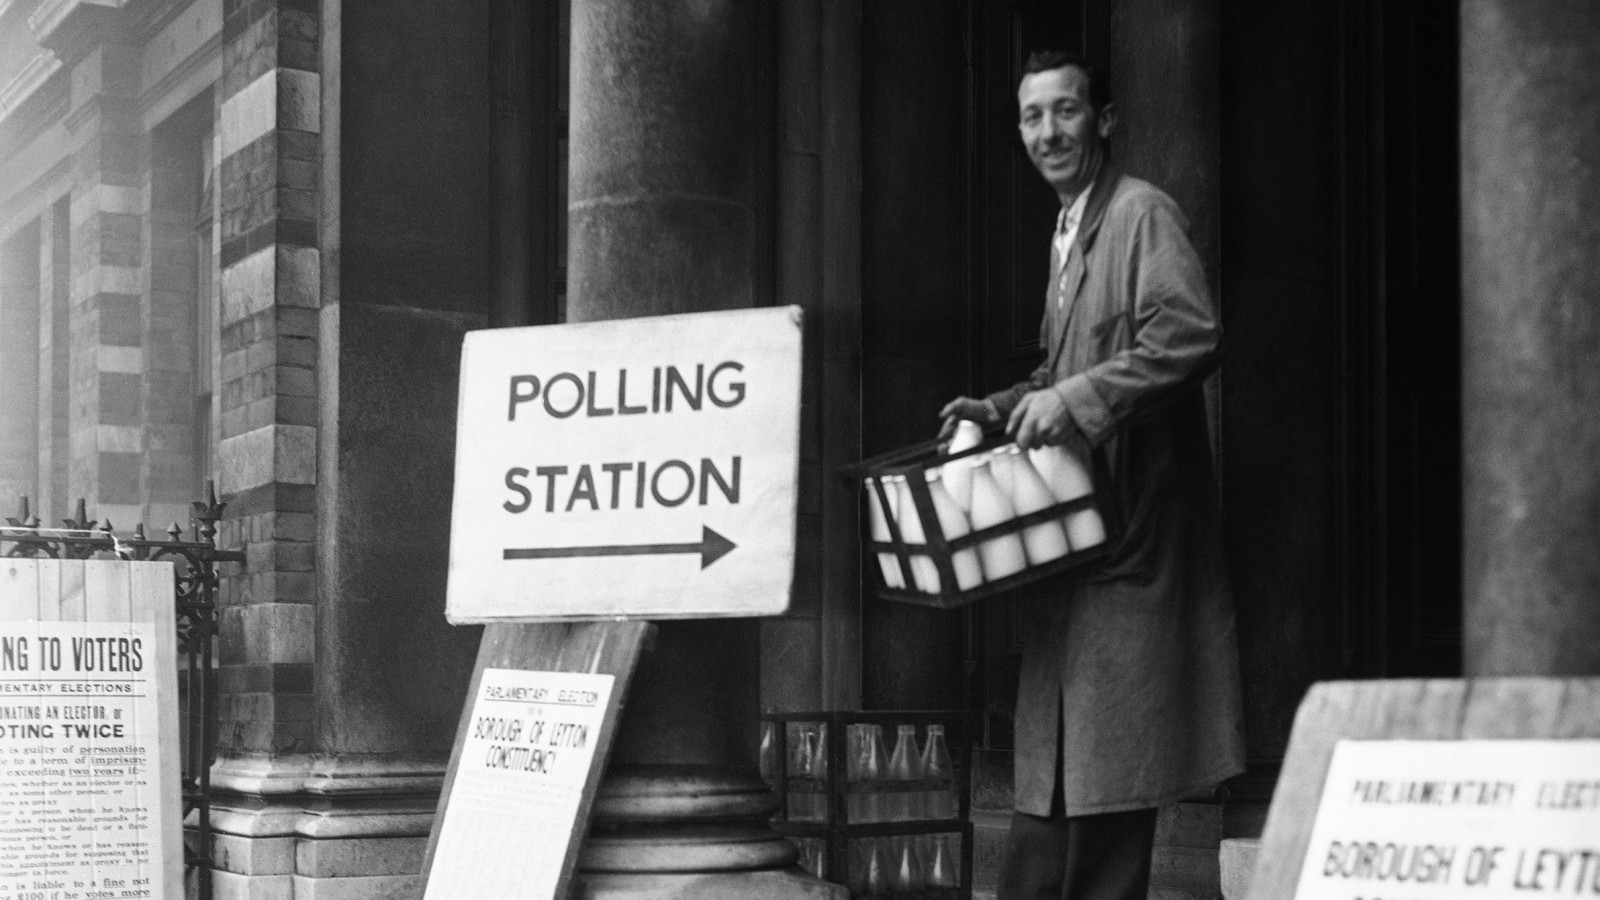 It was just striking seven o'clock when milkman Bill Hughes delivered the milk at Leyton Town Hall in London on Oct. 8, 1959. He left he milk on the Town Hall steps and went in to the polling station to cast his ballot along with the early voters. (AP Photo)